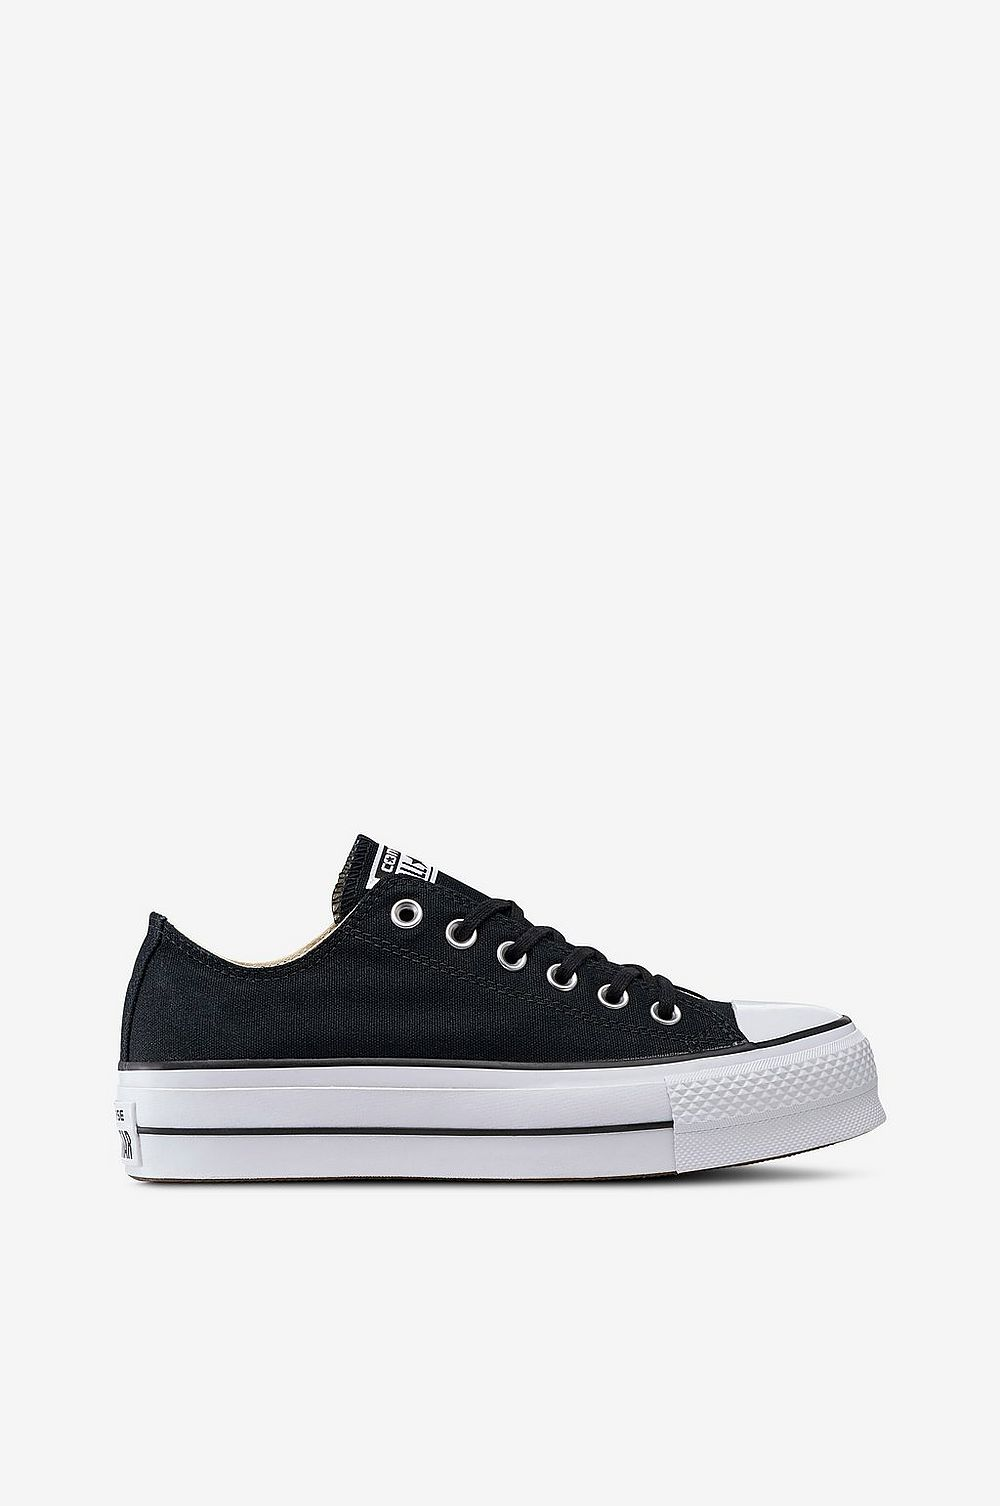 Sneakers Chuck Taylor All Star Lift Ox. Converse